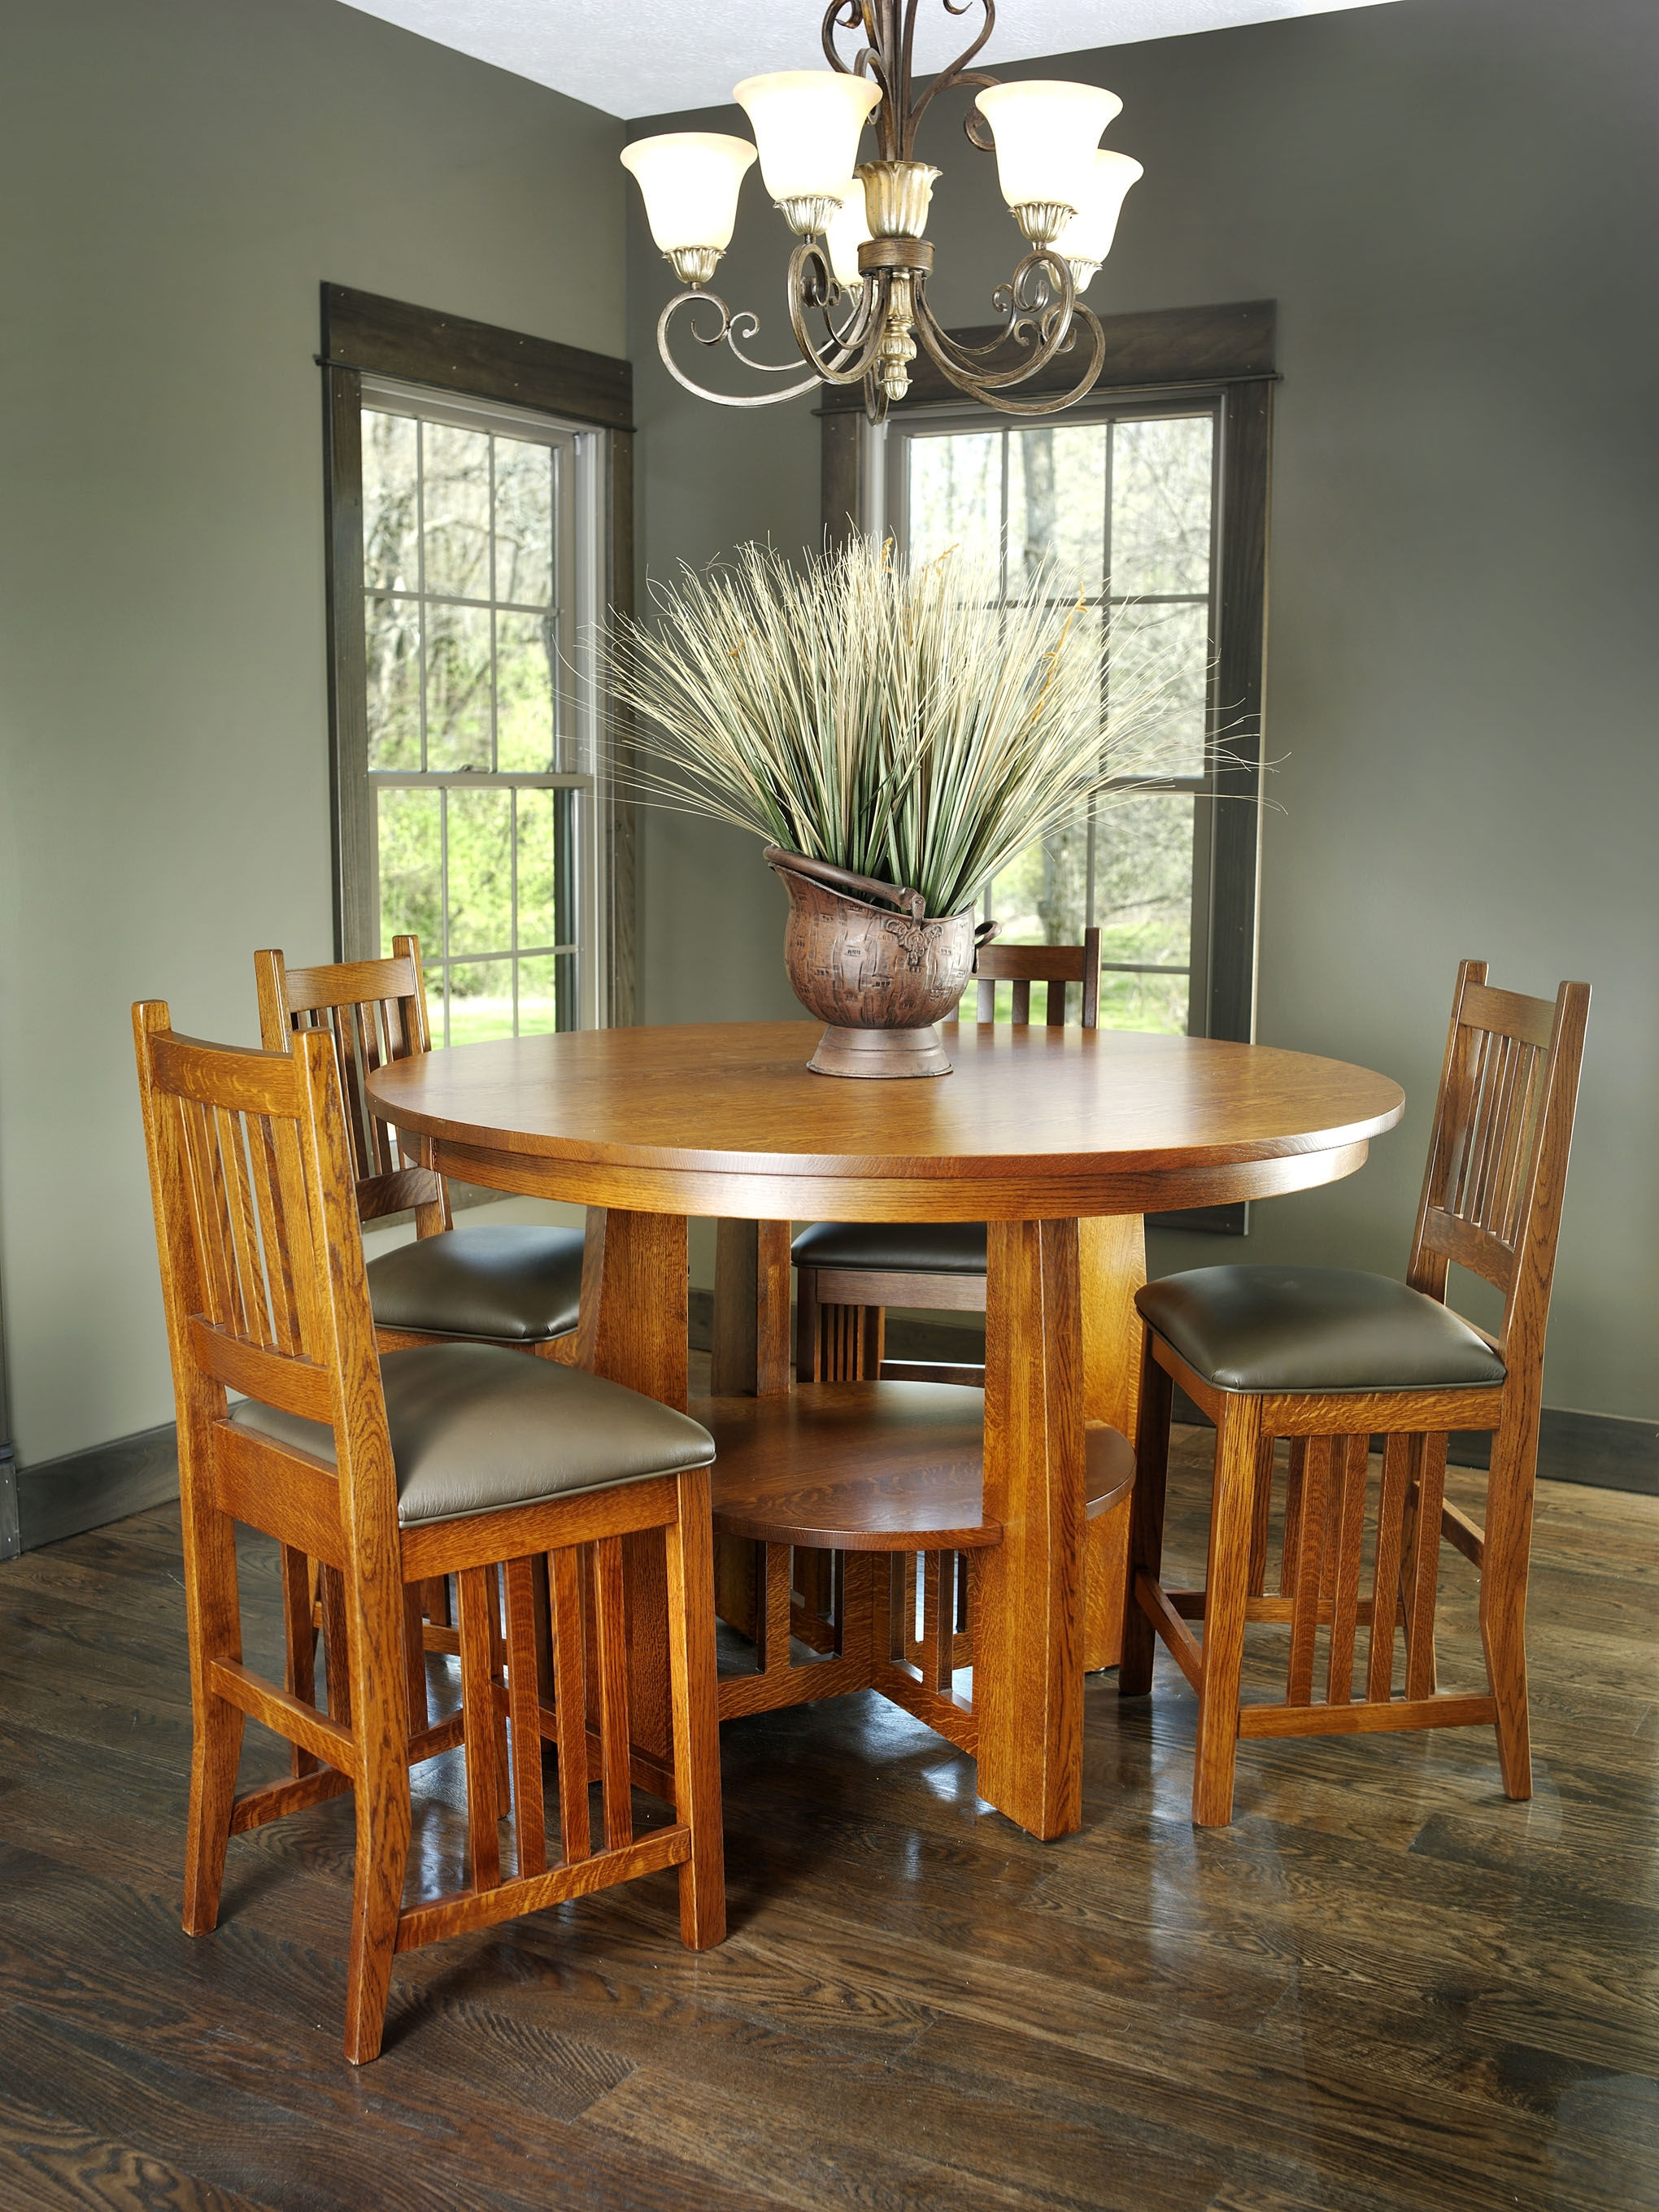 Patterson Furniture Company – Quality American Made Furniture For With Trendy Patterson 6 Piece Dining Sets (View 5 of 25)